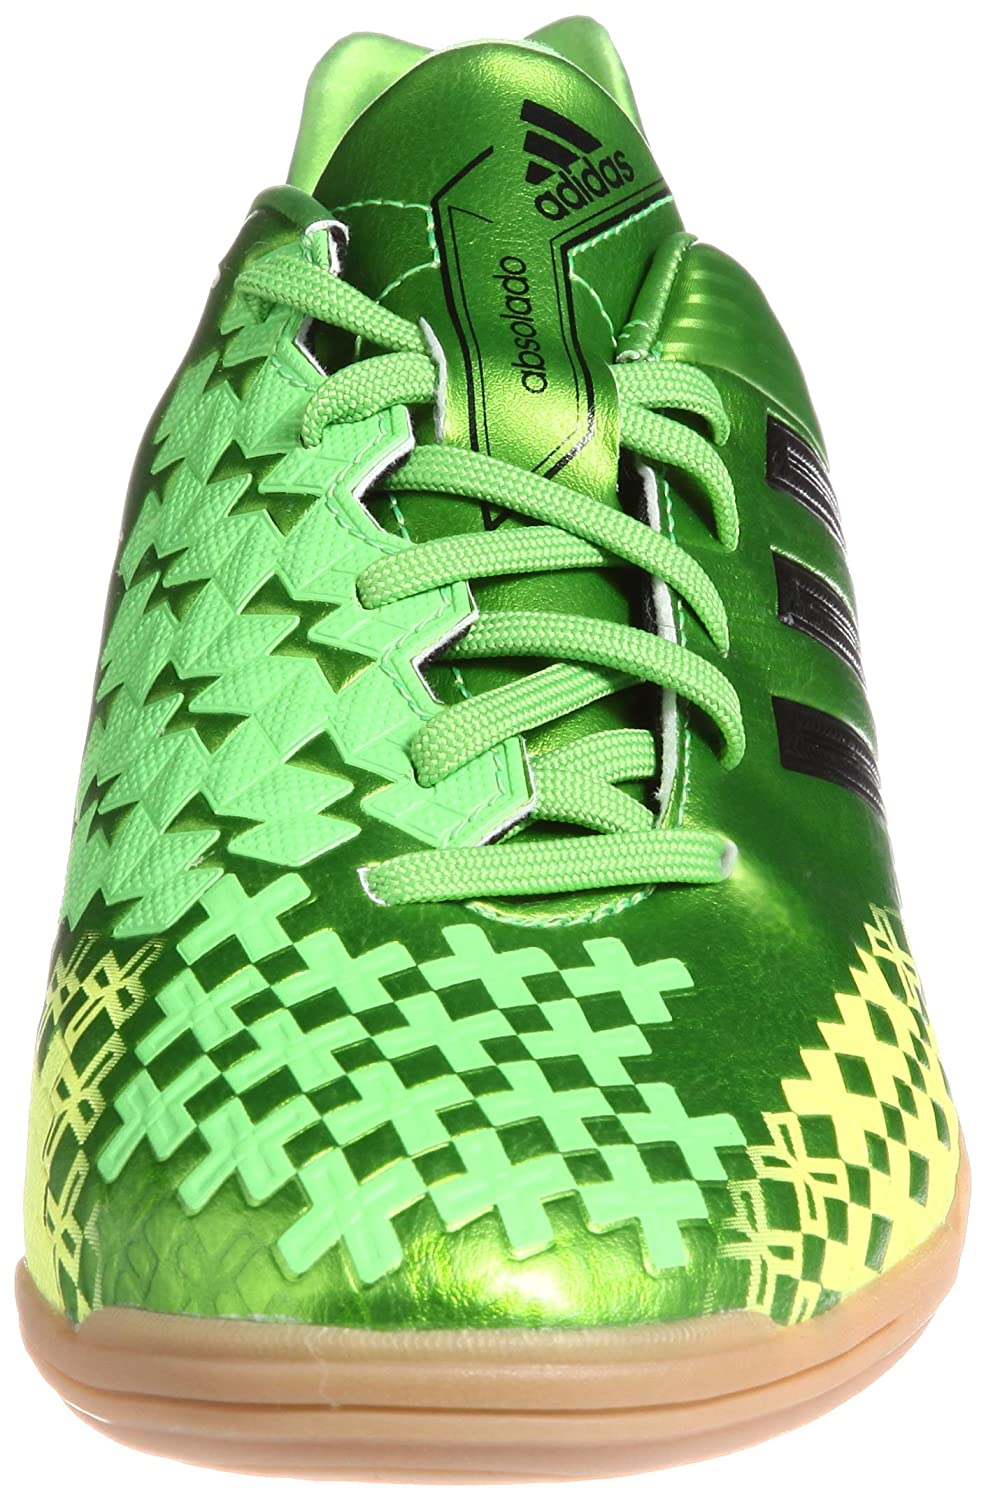 buy popular 41150 503a0 ... free shipping amazon adidas predator absolado lethal zone junior indoor  soccer cleats soccer 66d56 2d130